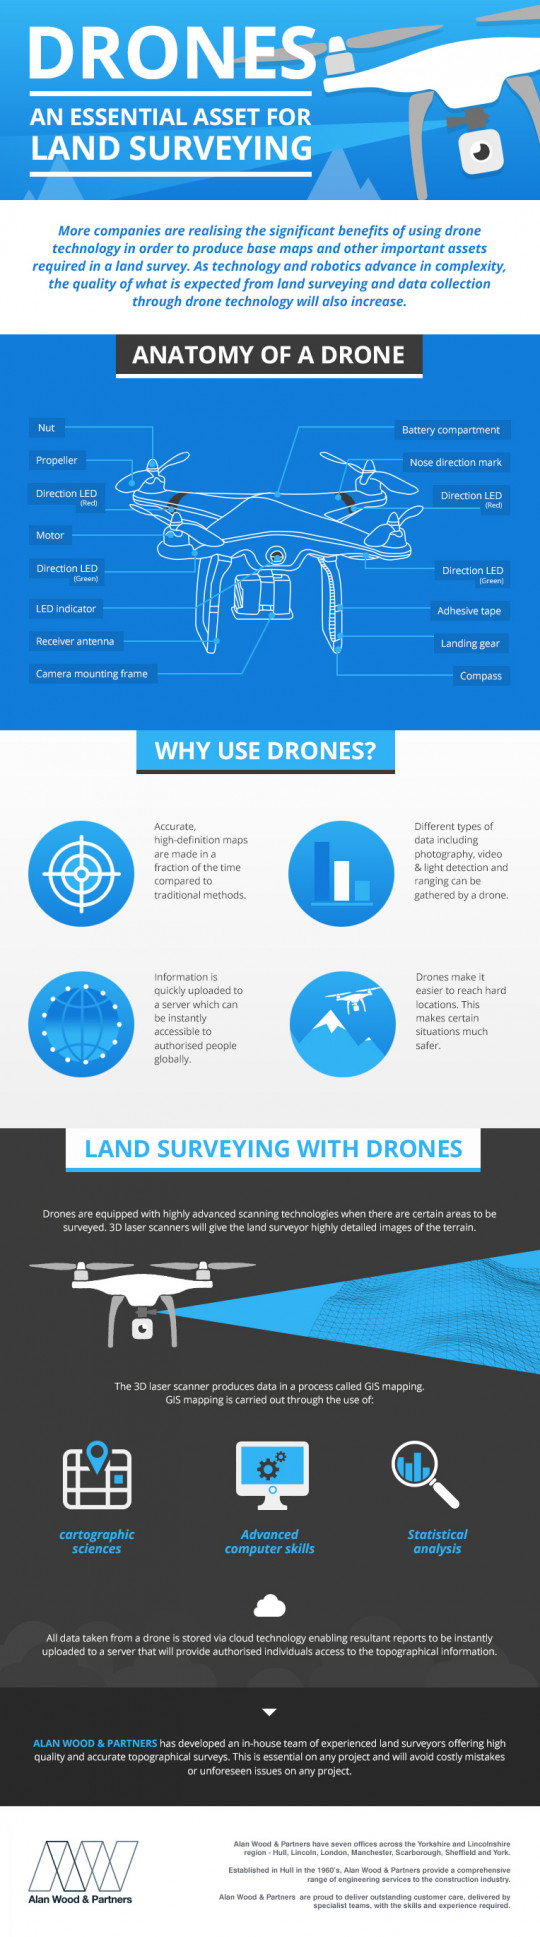 Drones - An Essential For Land Surveying